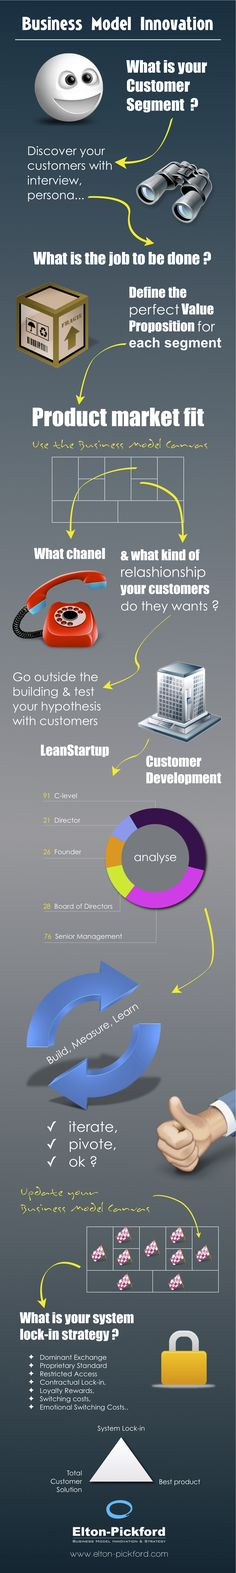 Elton-Pickford - Business Model Innovation Infographics  www.elton-pickford.com